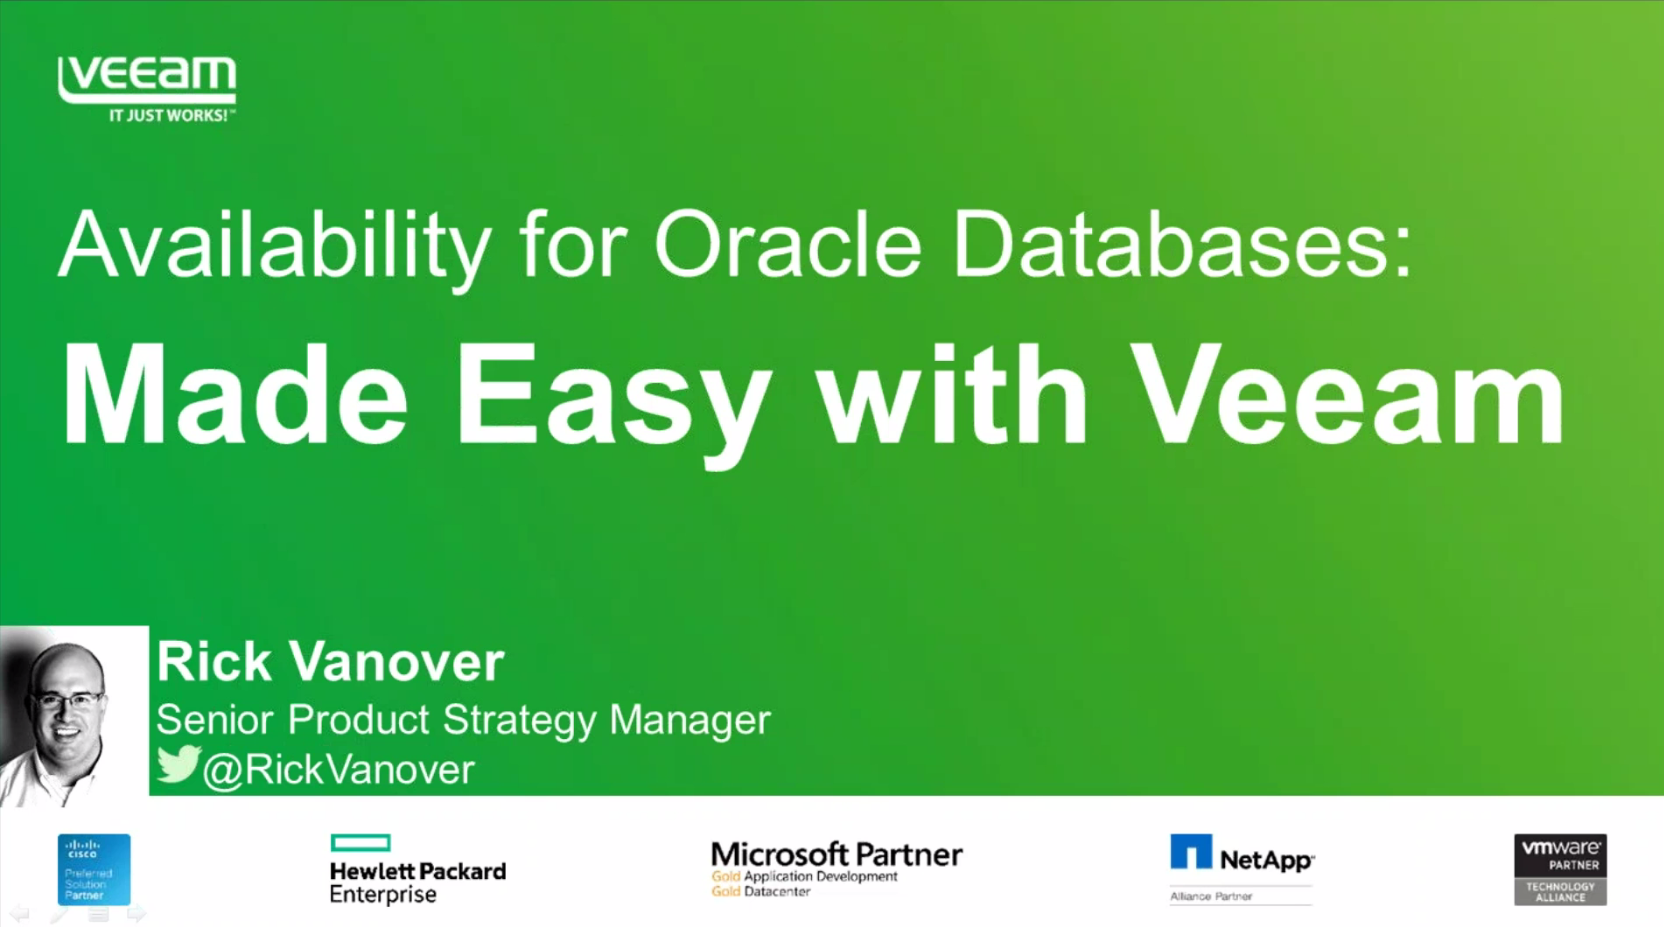 Advanced Availability for Oracle Databases: Made easy with Veeam